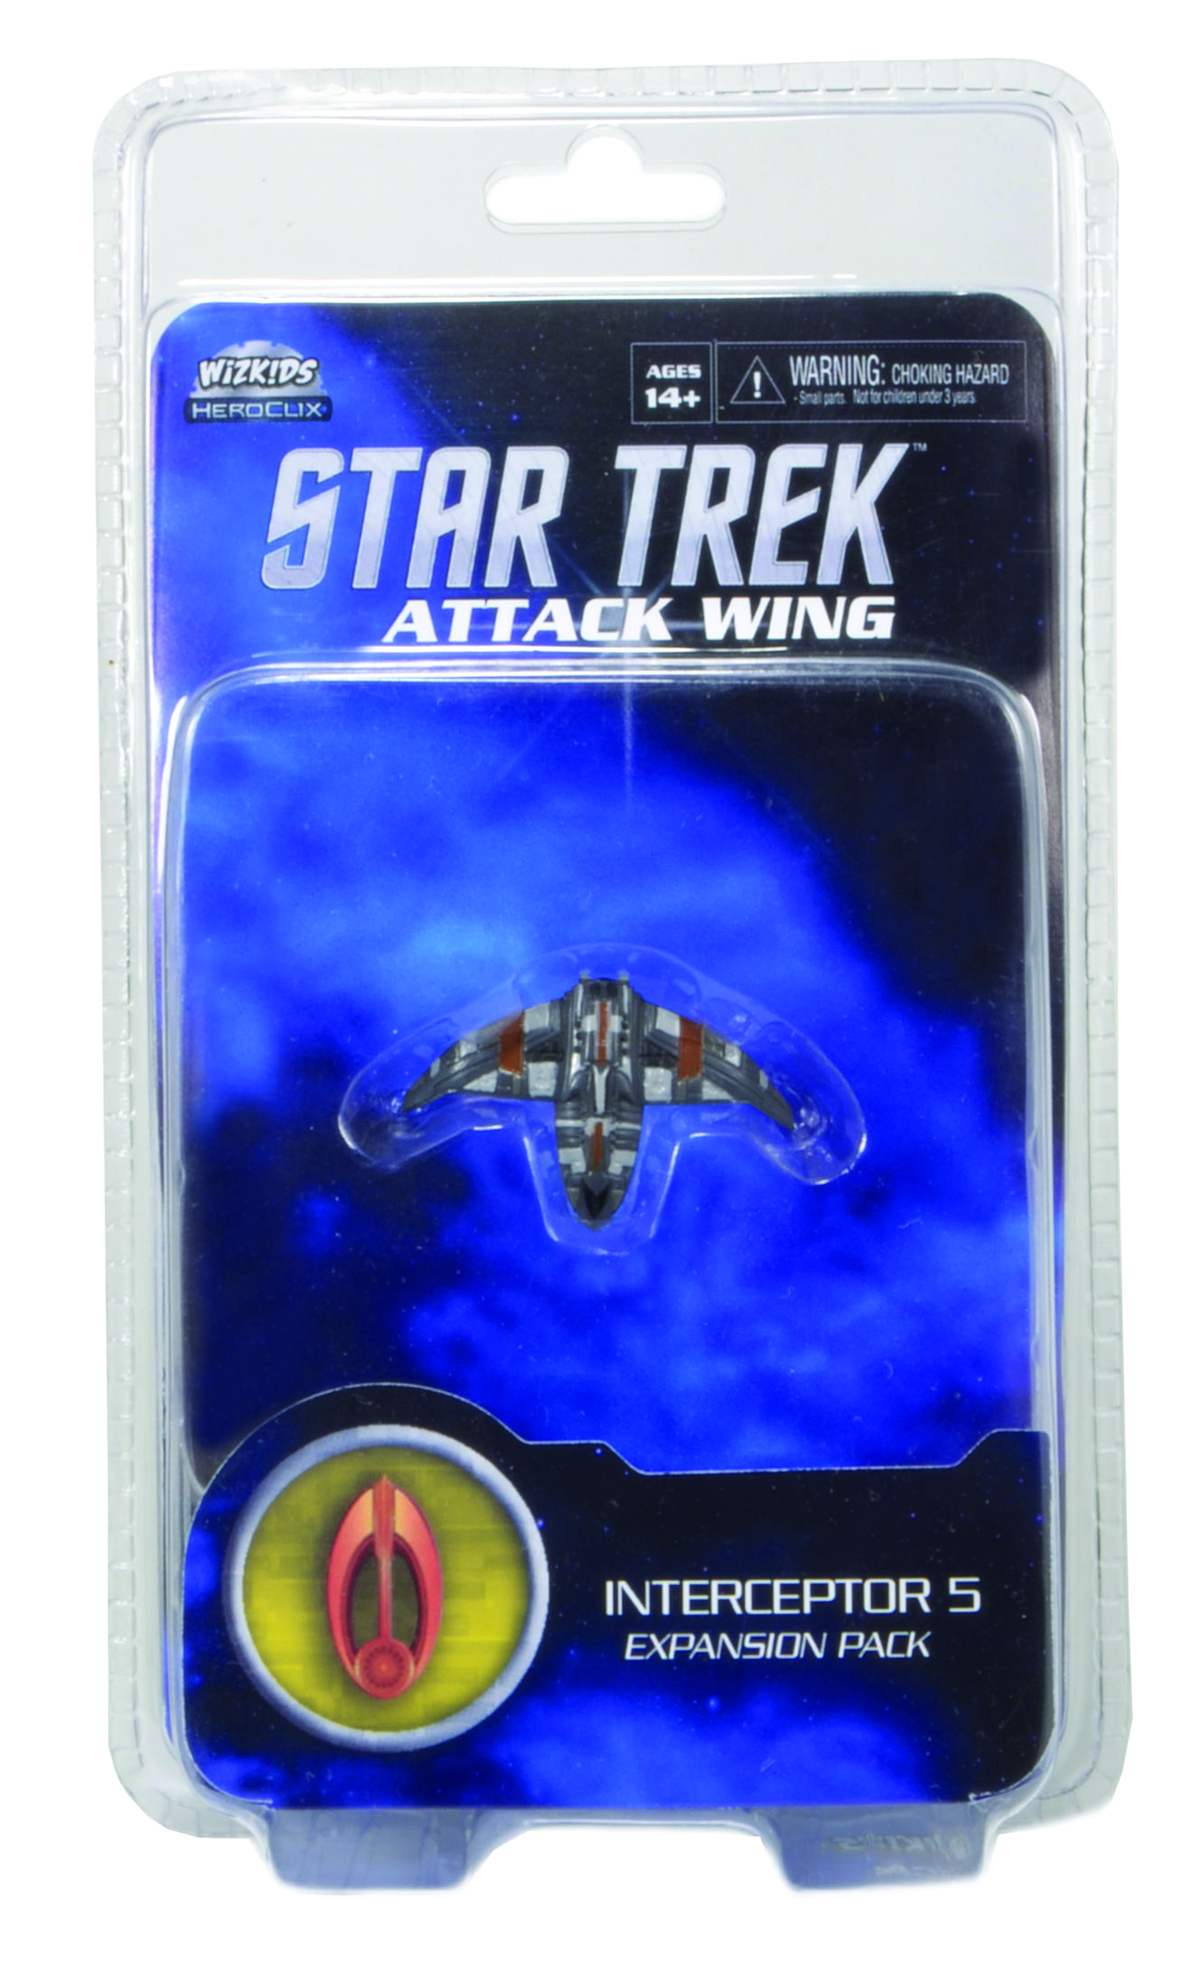 STAR TREK ATTACK WING INTERCEPTOR 5 BAJORAN EXP